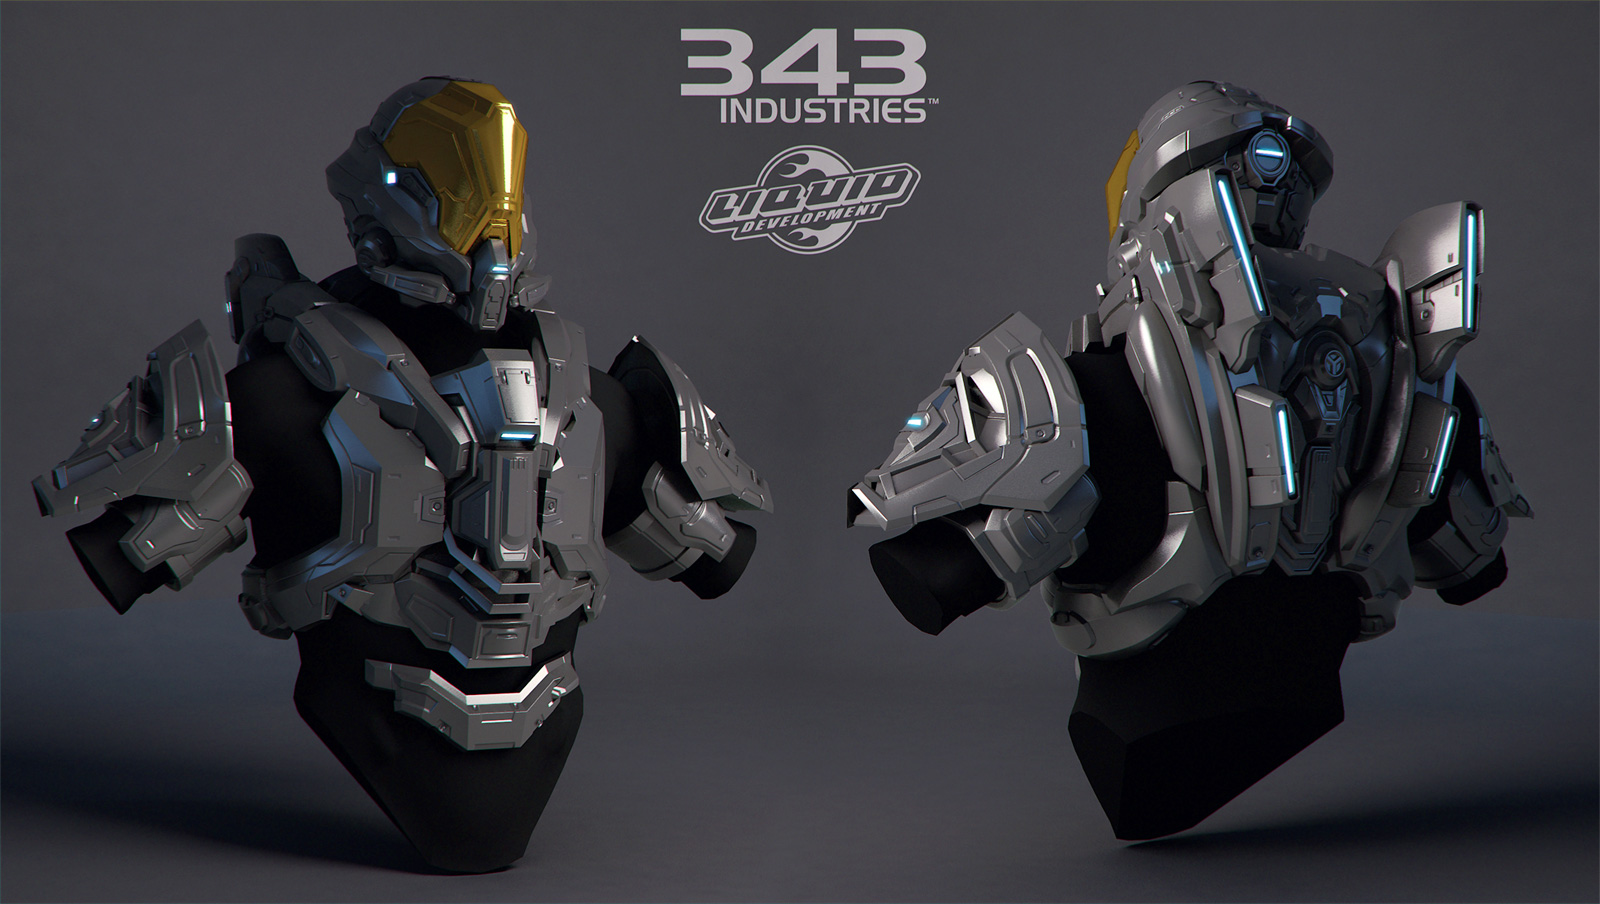 Halo 3 armors in halo 5? Vote  | Poll Discussions | Forums